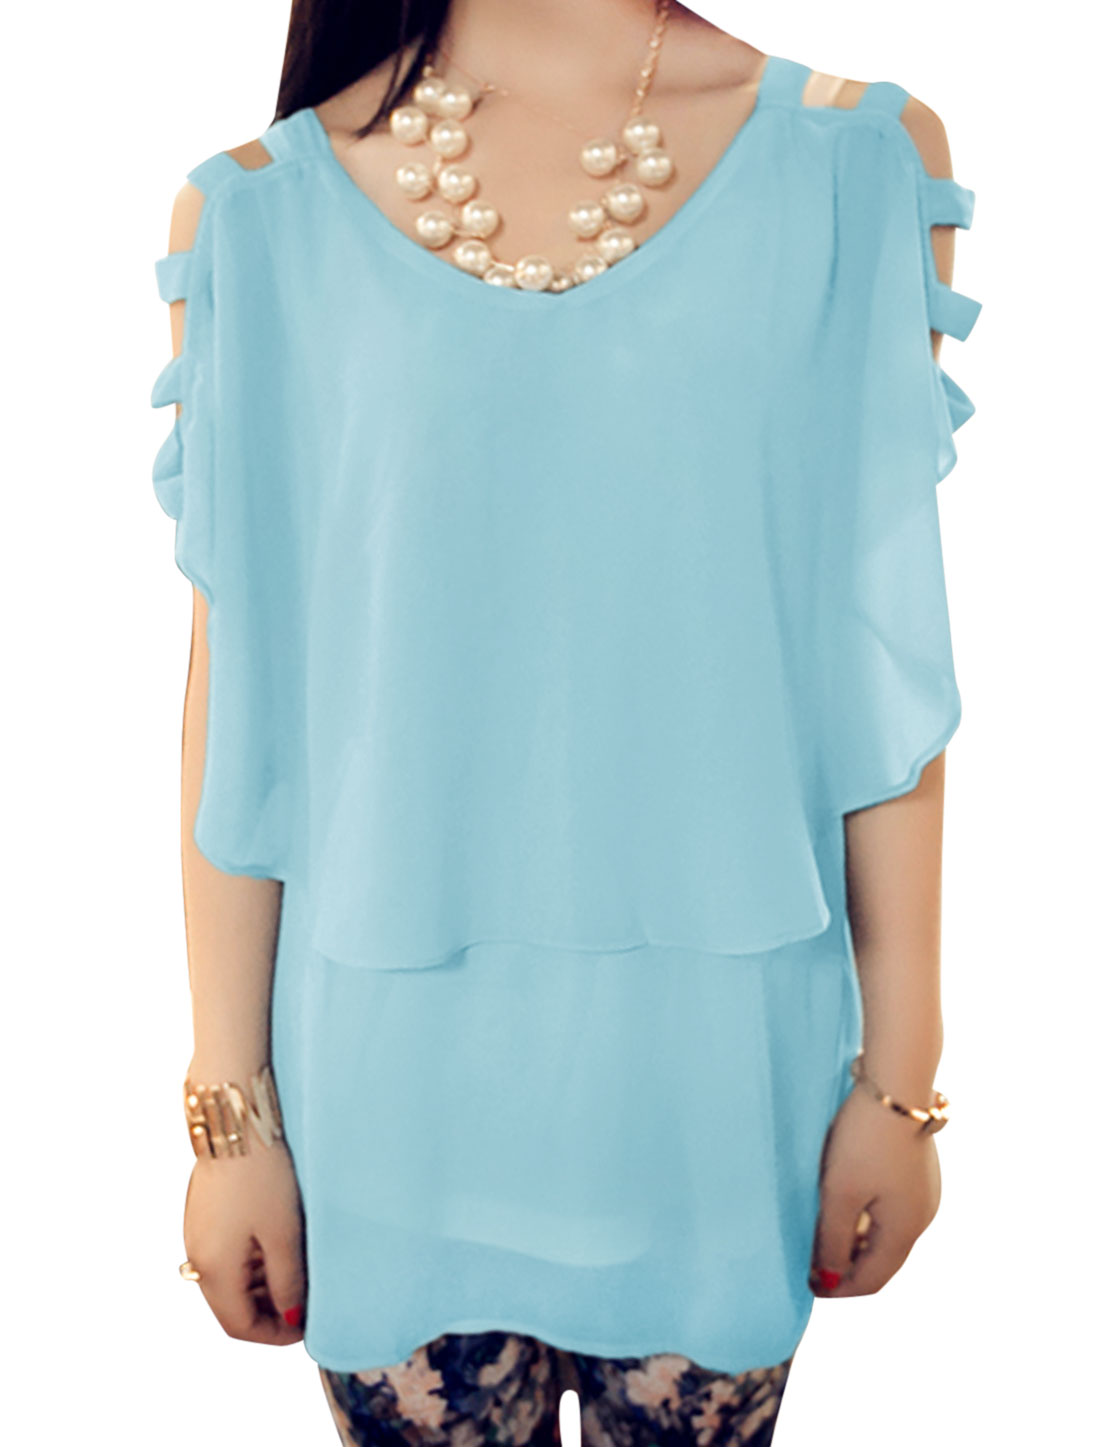 Lady Round Neck Cut Out Design Flouncing Style Blouse Sky Blue XS